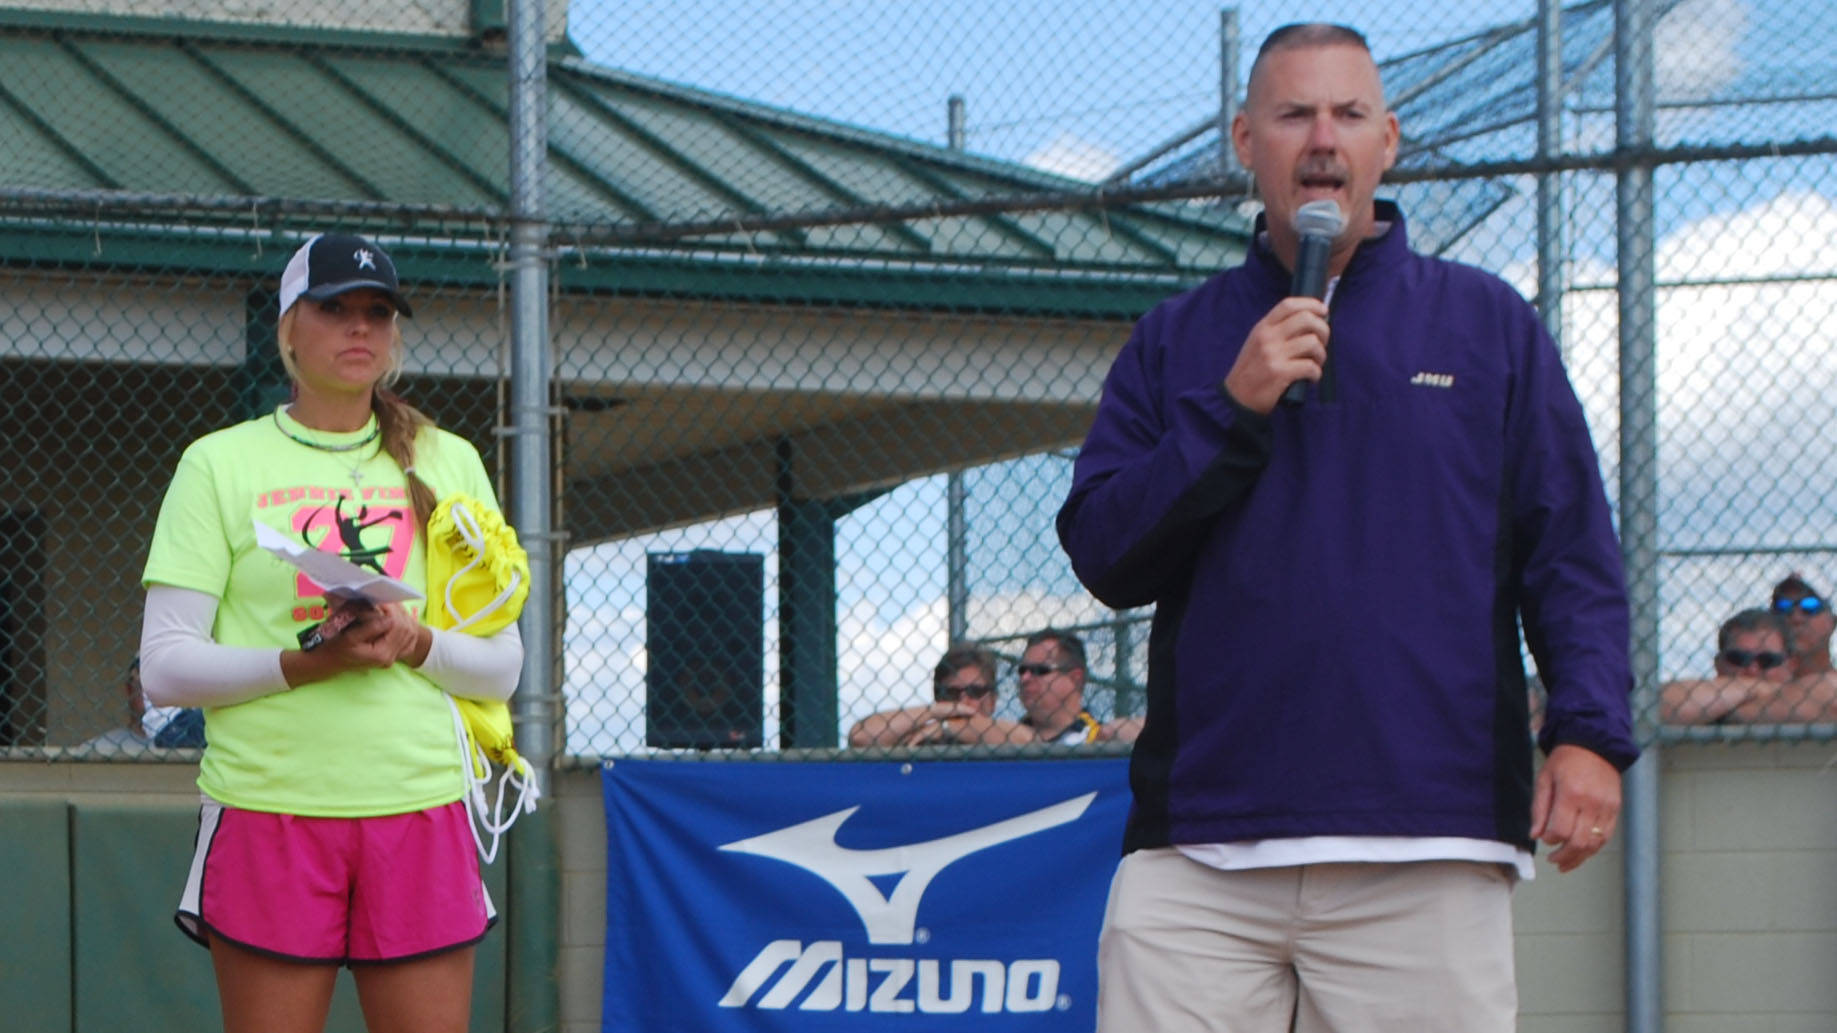 Softball: JMU To Host Champions Dinner with Olympic Legend Jennie Finch